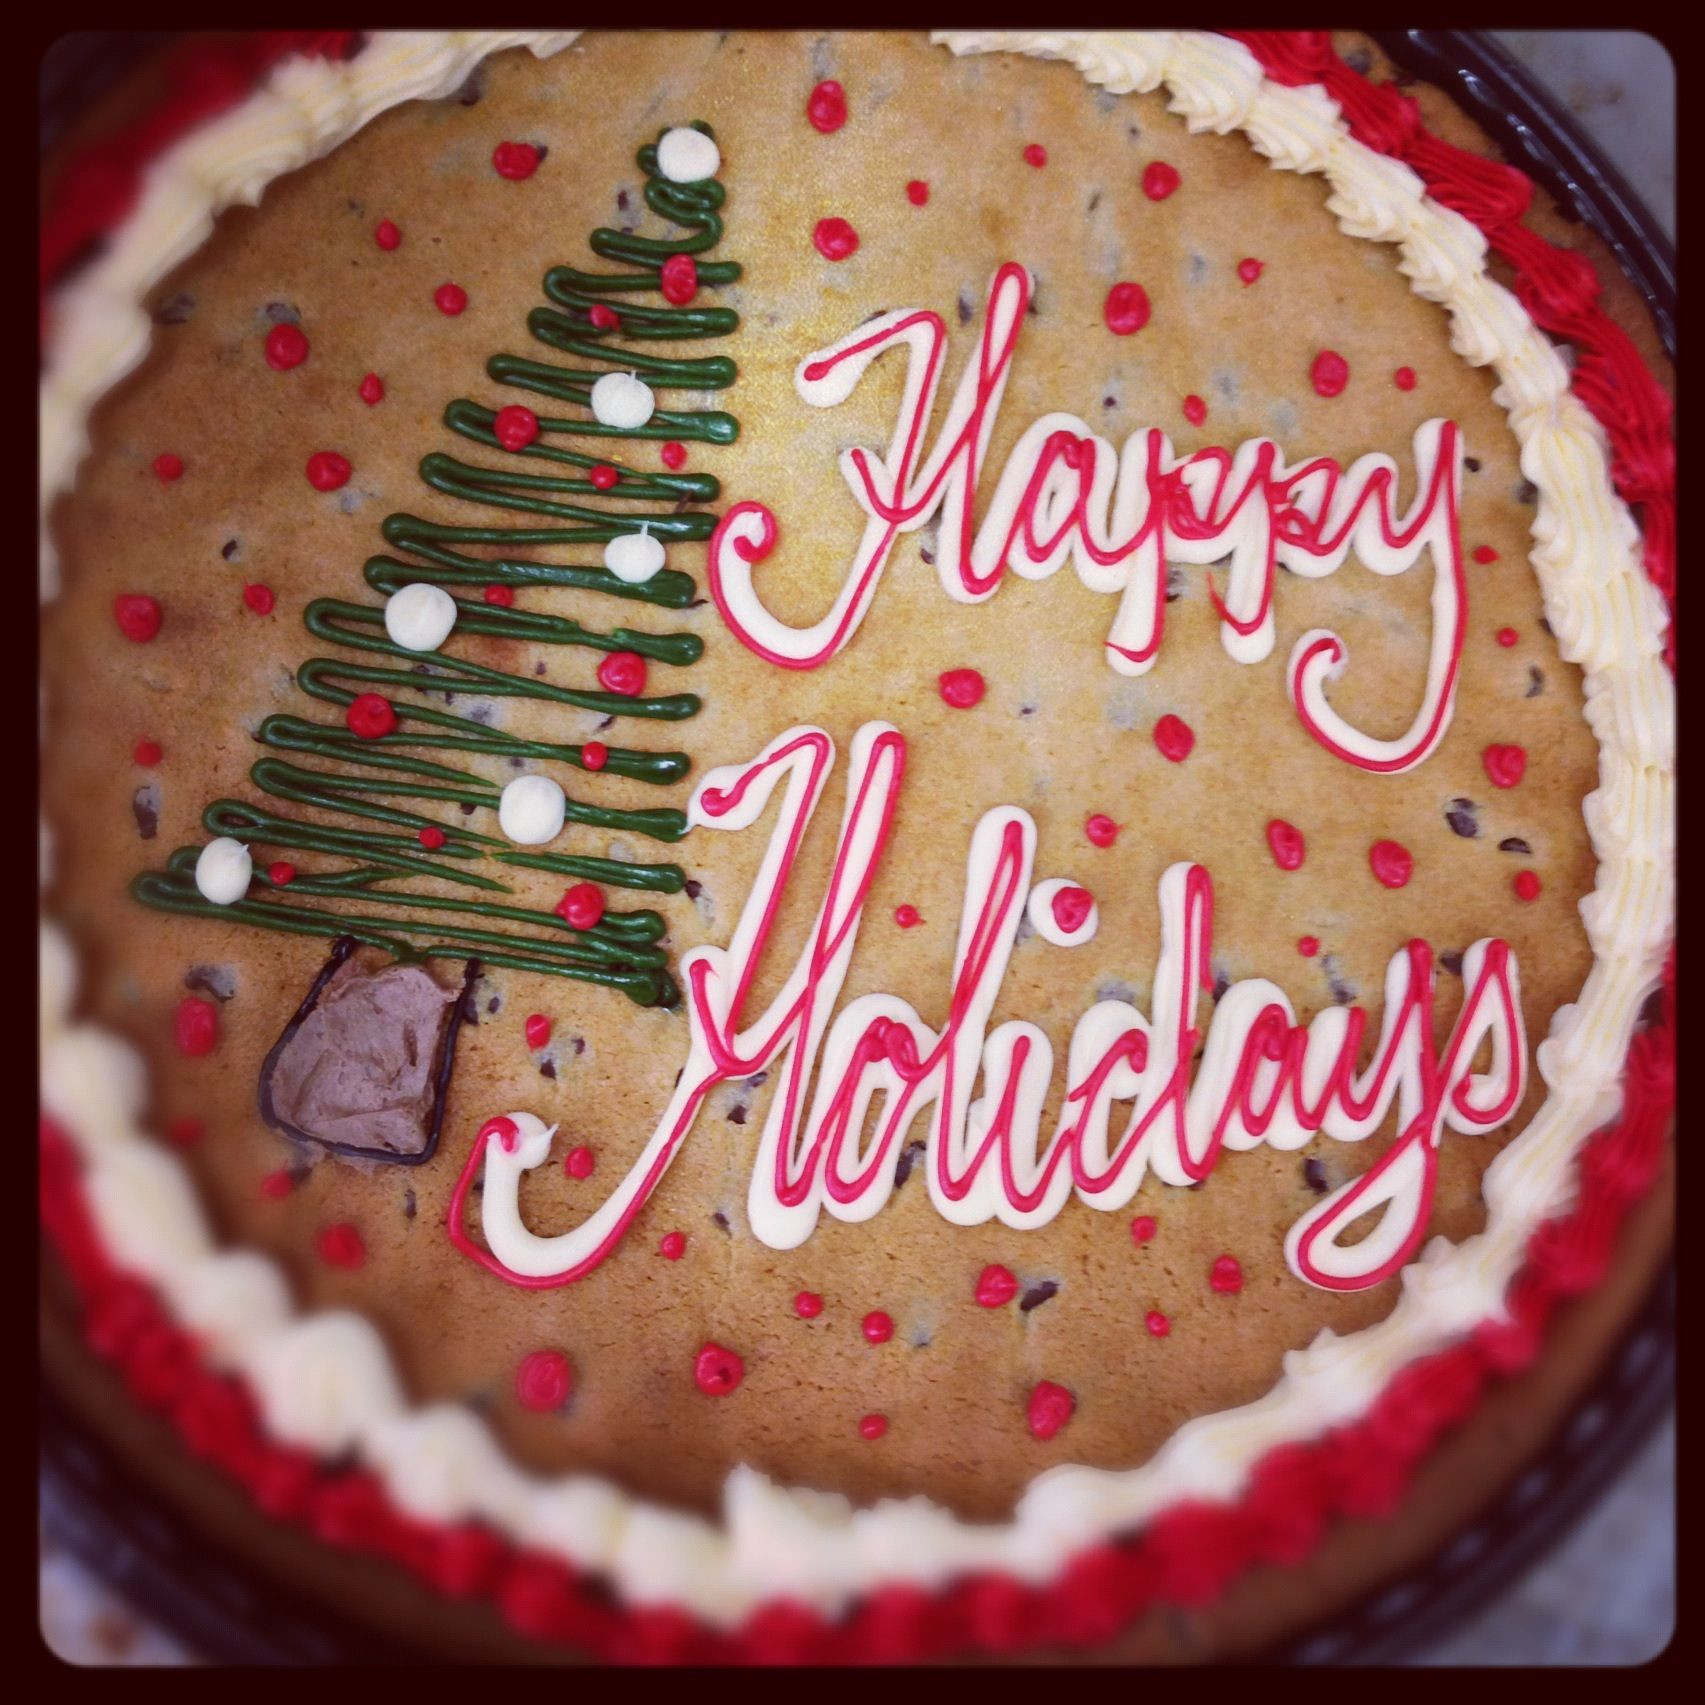 Albertsons Cake Holiday Cookie Cake Holiday Cookies Bakery Cakes Cake